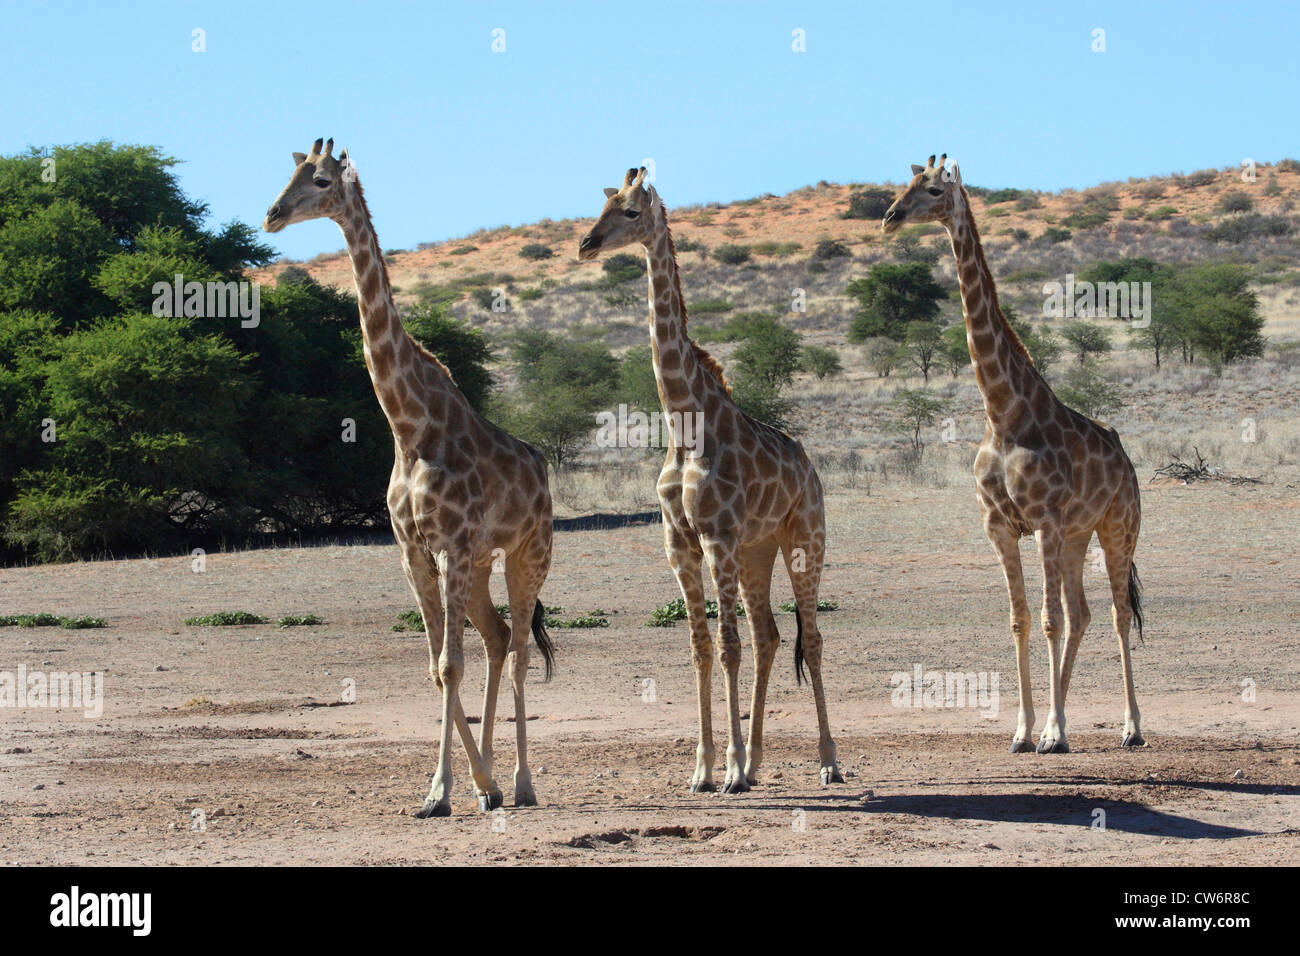 giraffe (Giraffa camelopardalis), three animals walking through the steppe side by side, South Africa, Kgalagadi Transfrontier NP Stock Photo